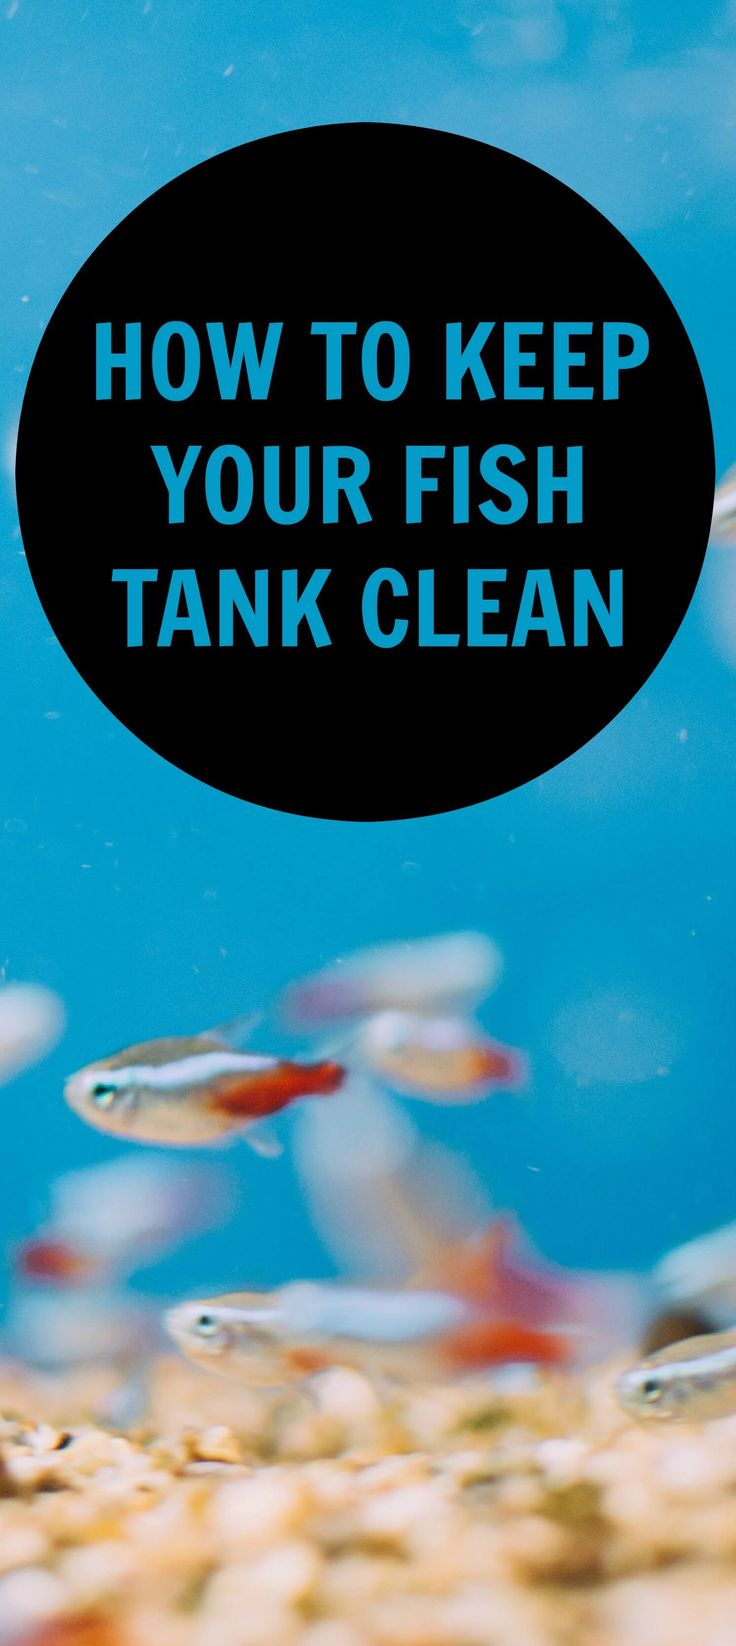 Fish aquarium cleaning tips - Keeping Your Fish Tank Or Aquarium Clean Is Critical To Keep Your Pets Healthy But